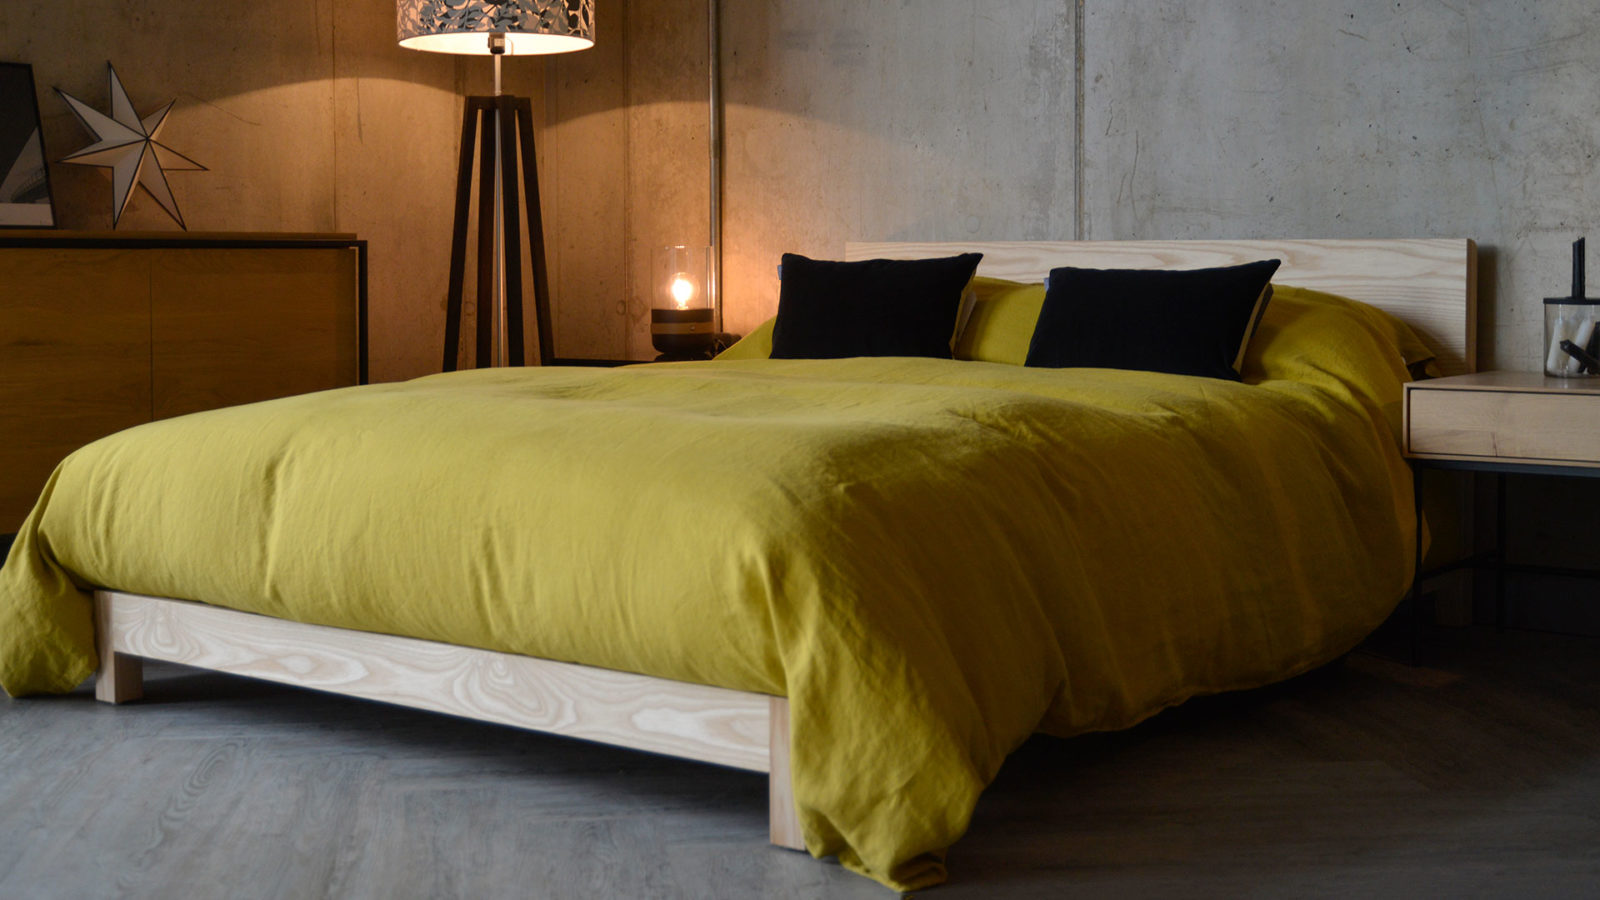 chartreuse linen bedding on our low solid wood Sonora bed here made from Ash